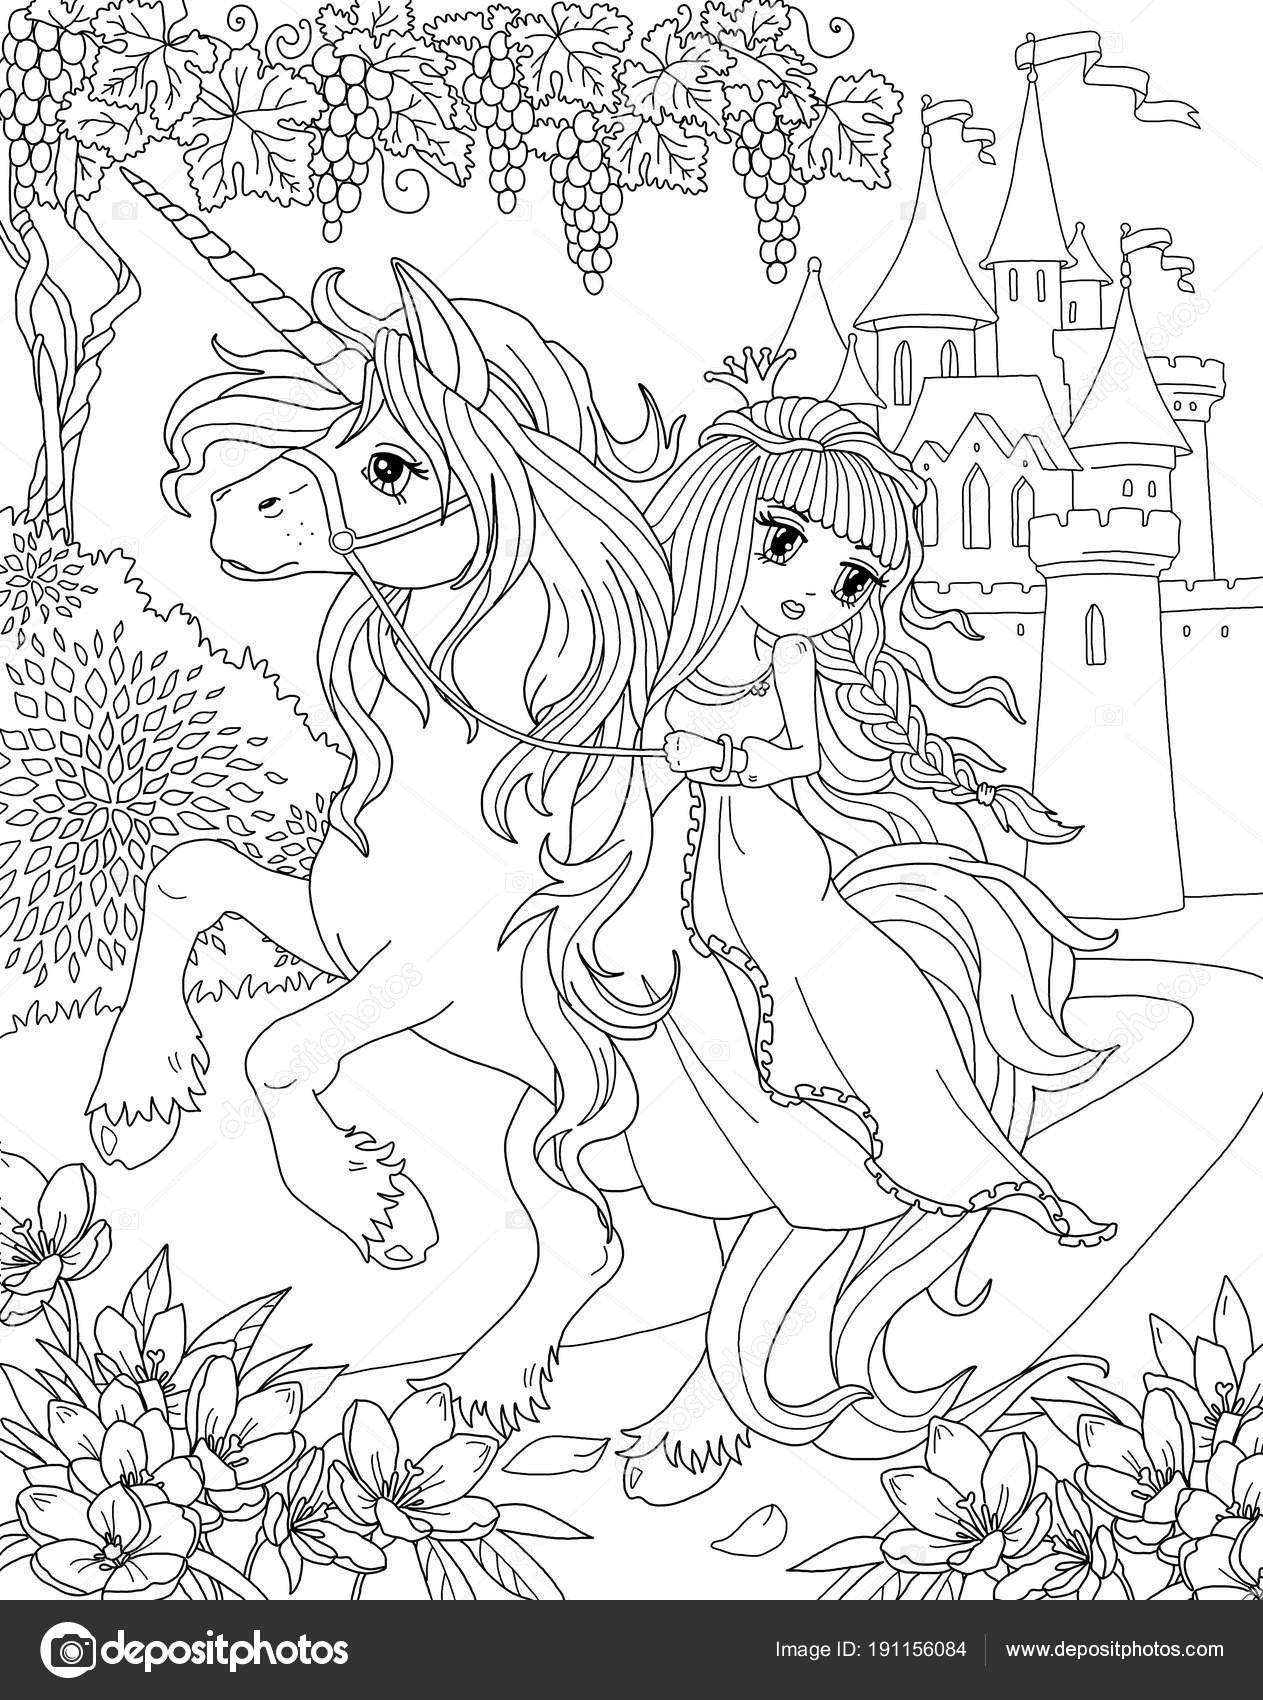 Princess Unicorn Coloring Page Youngandtae Com Unicorn Coloring Pages Princess Coloring Pages Disney Coloring Pages